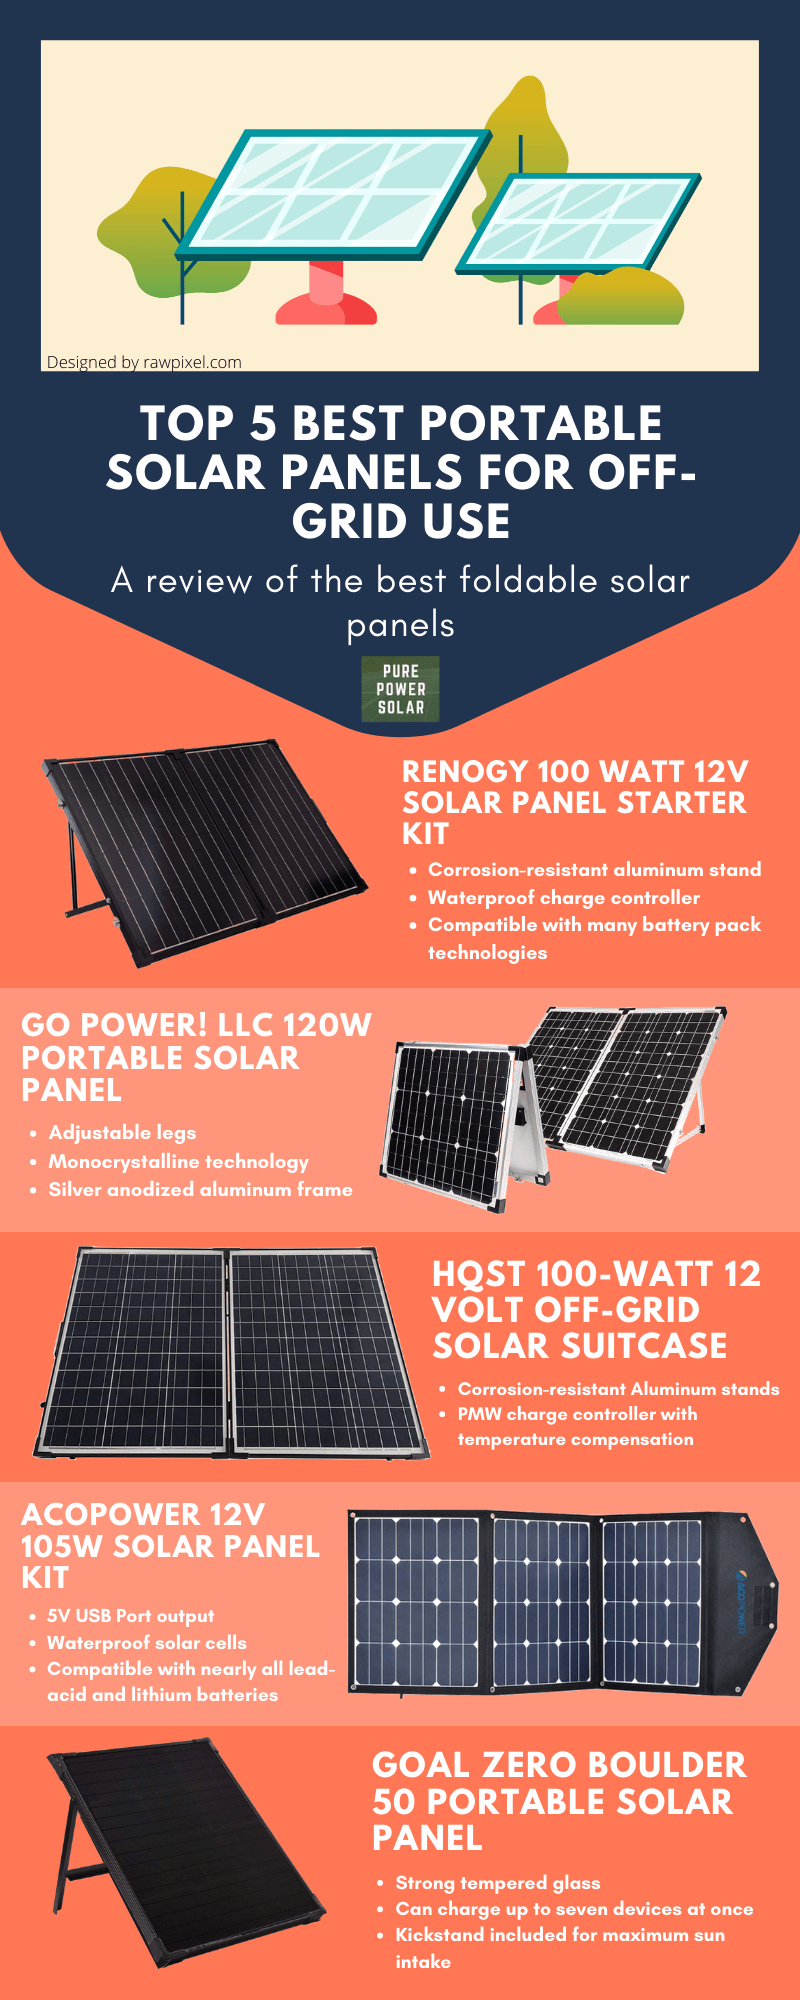 Top 5 Best Portable Solar Panels for Off-Grid Use Infographic